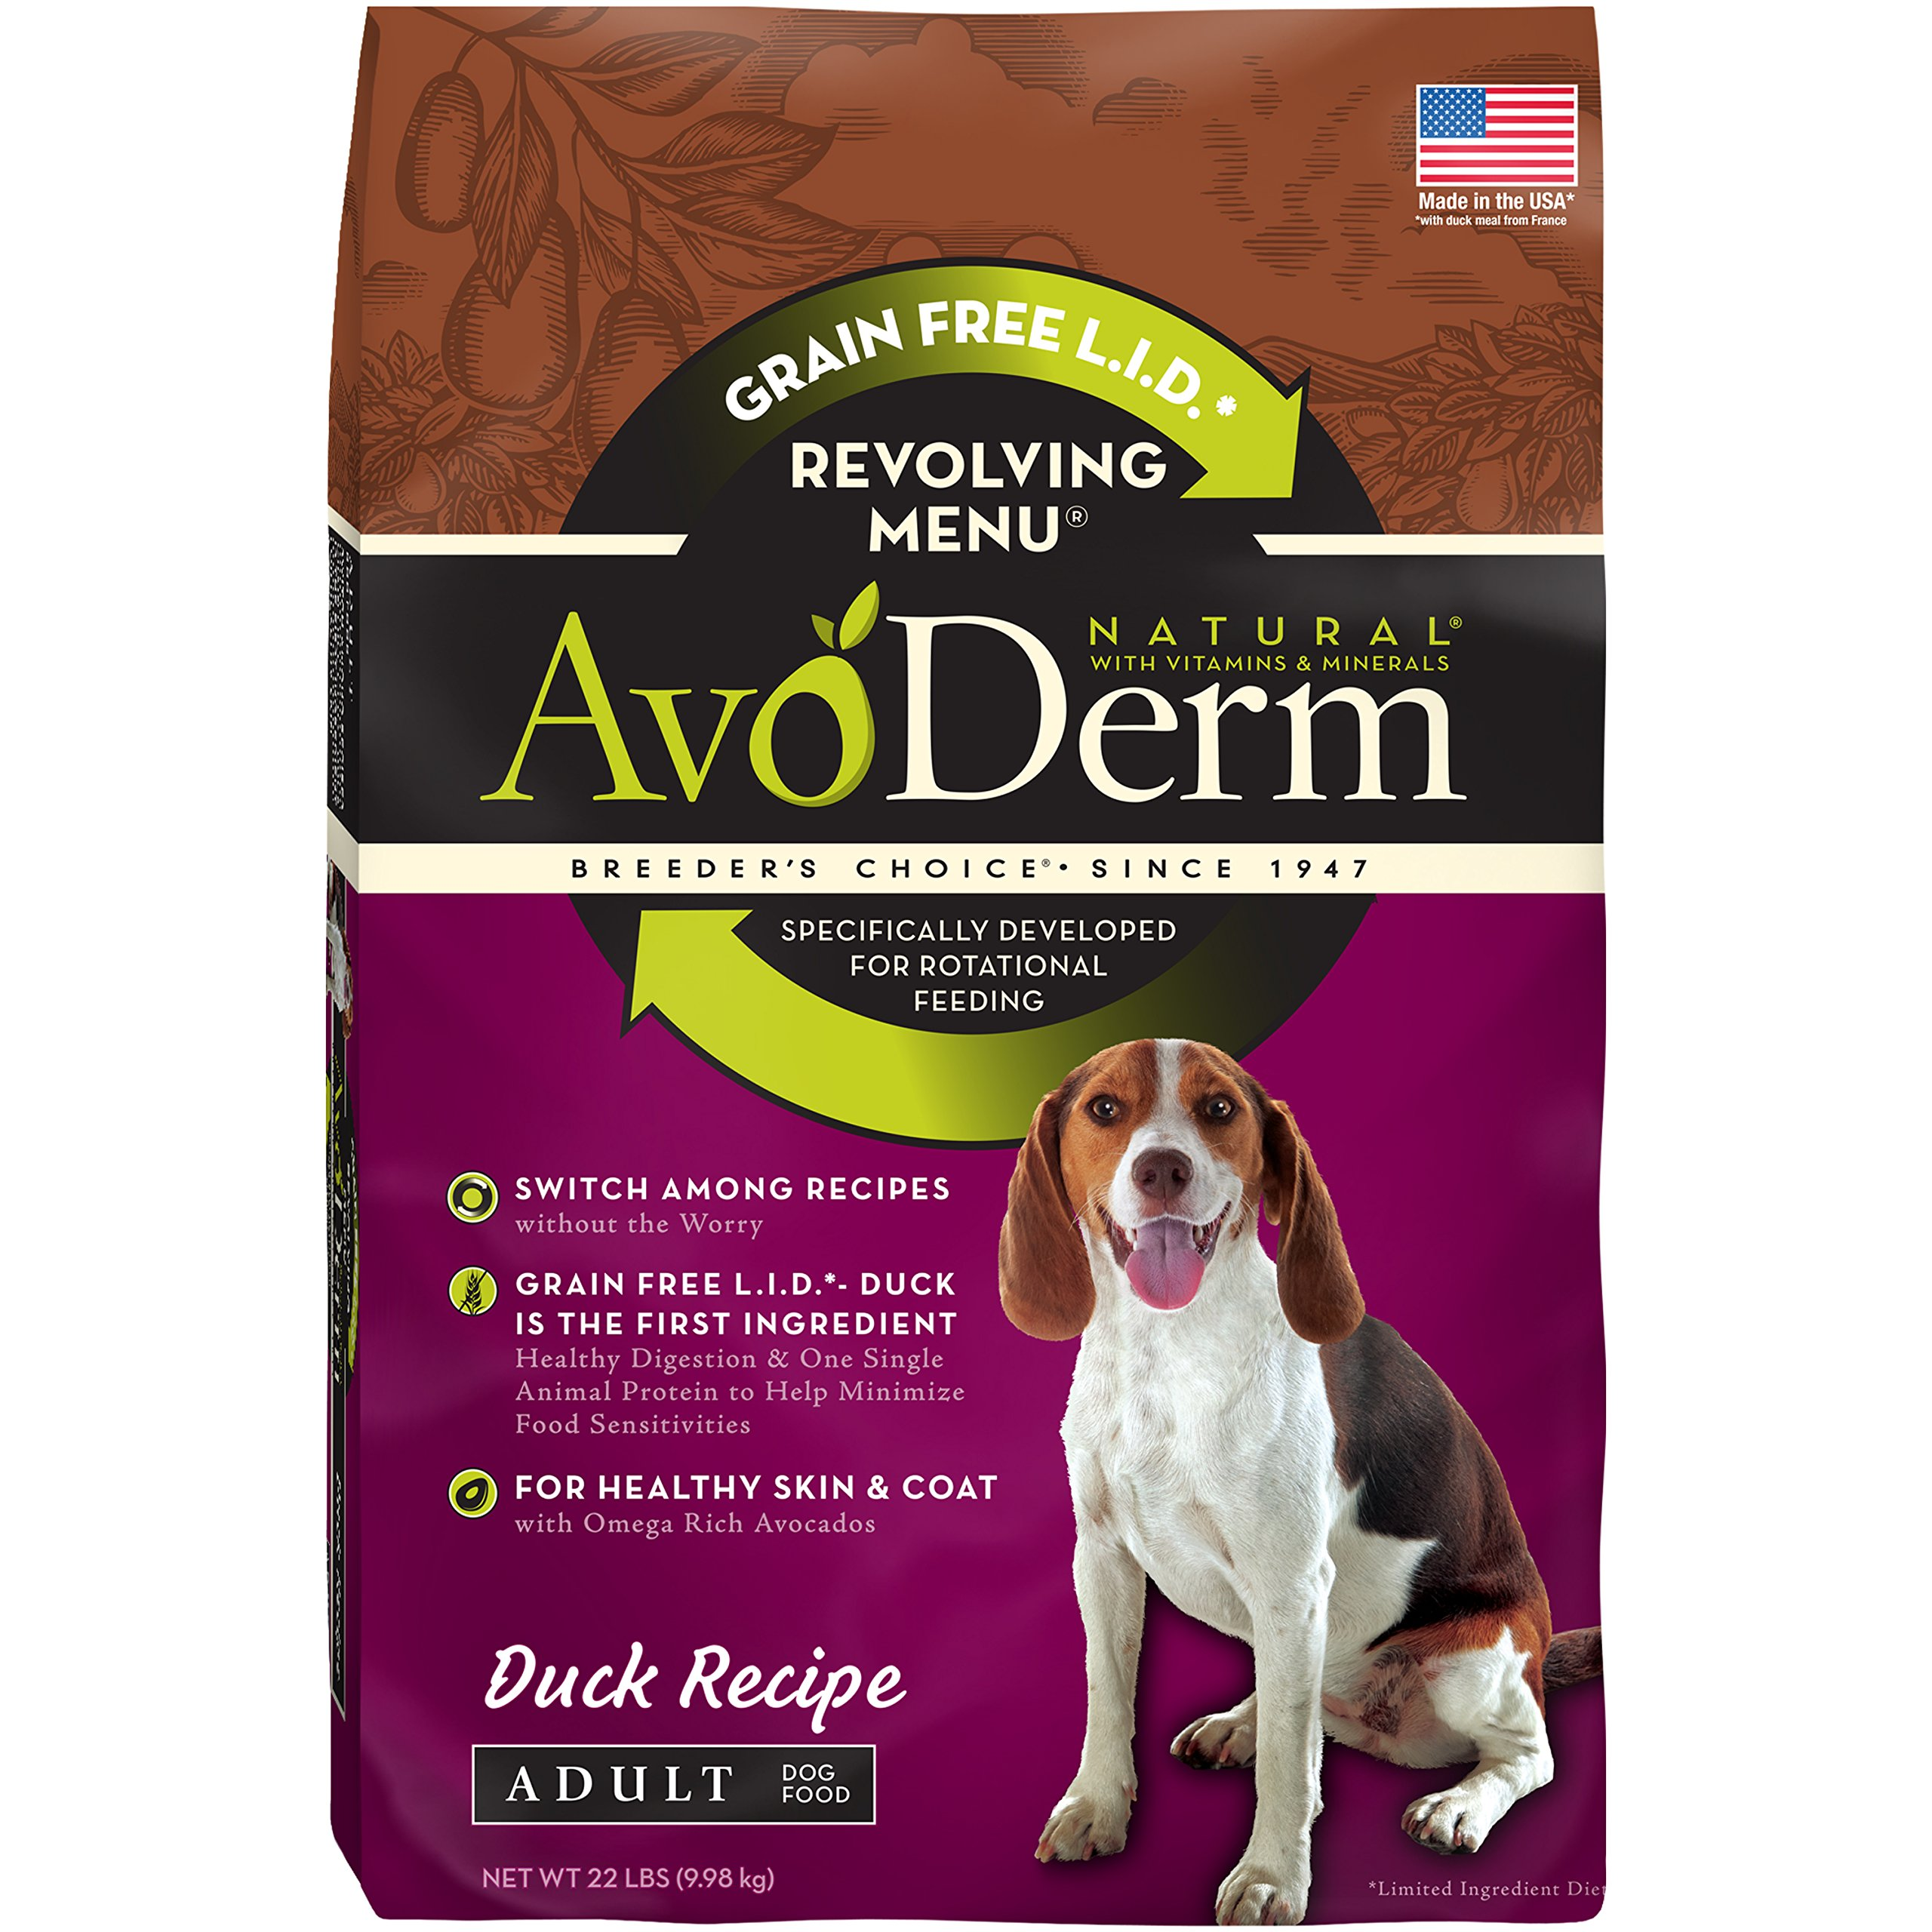 AvoDerm Natural Revolving Menu Dry & Wet Dog Food For Rotational Feeding, Food Intolerance and Sensitivities by AvoDerm